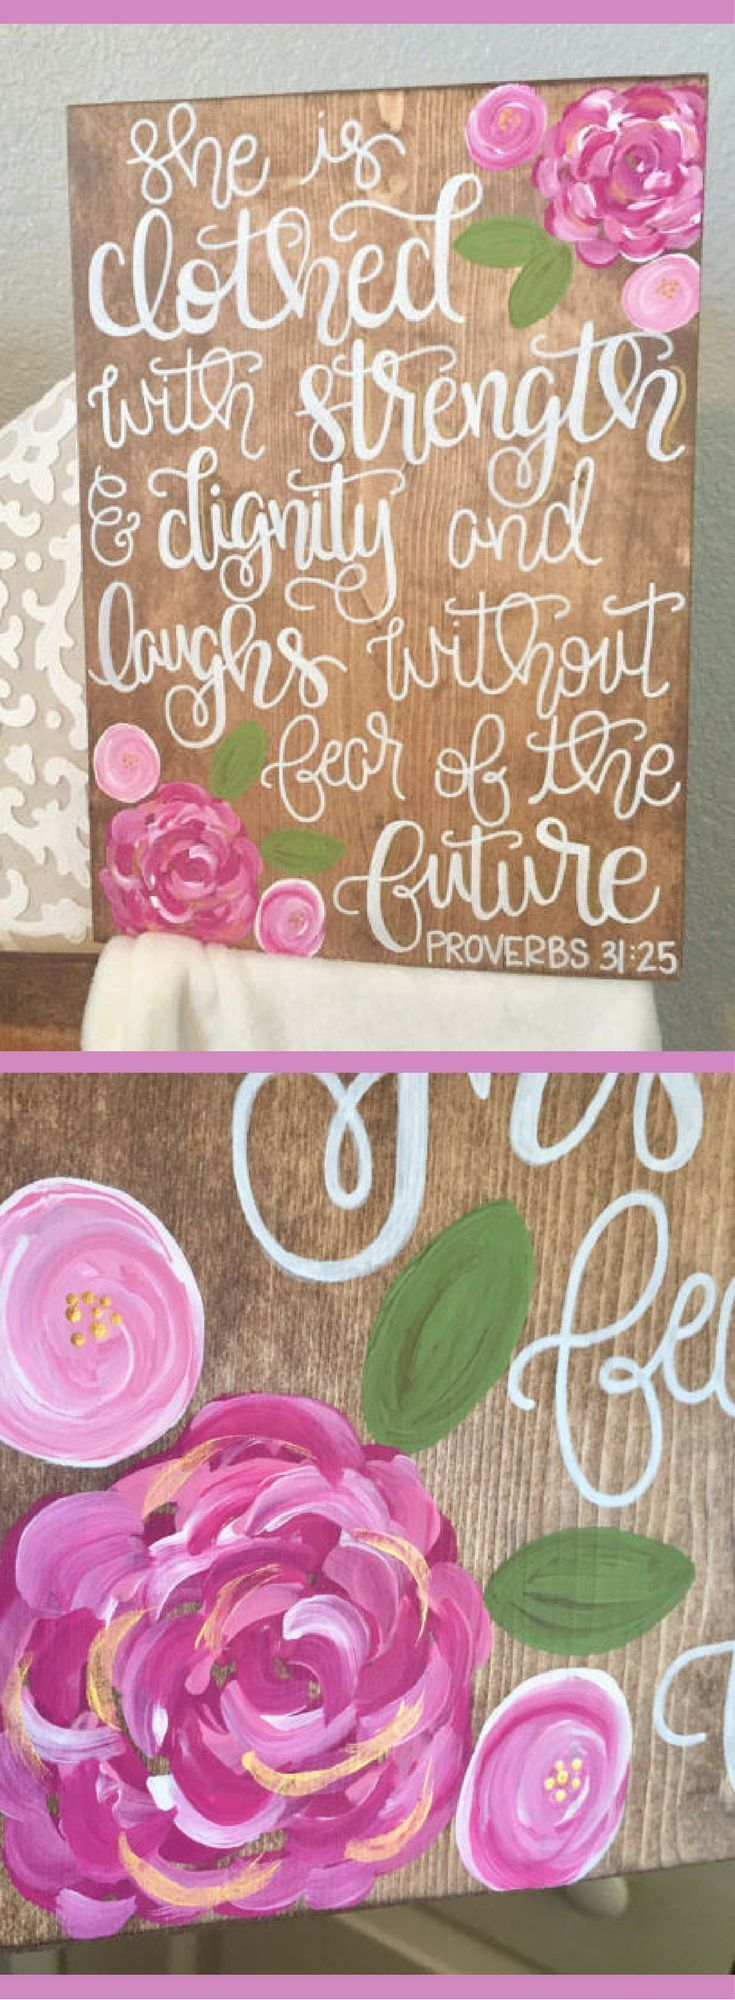 She is clothed with strength and dignity and laughs without fear of the future Proverbs 31:25 sign, Scripture wall art, baby shower gift, baby girl nursery sign, rustic nursery decor, pink floral nursery decor #affiliate